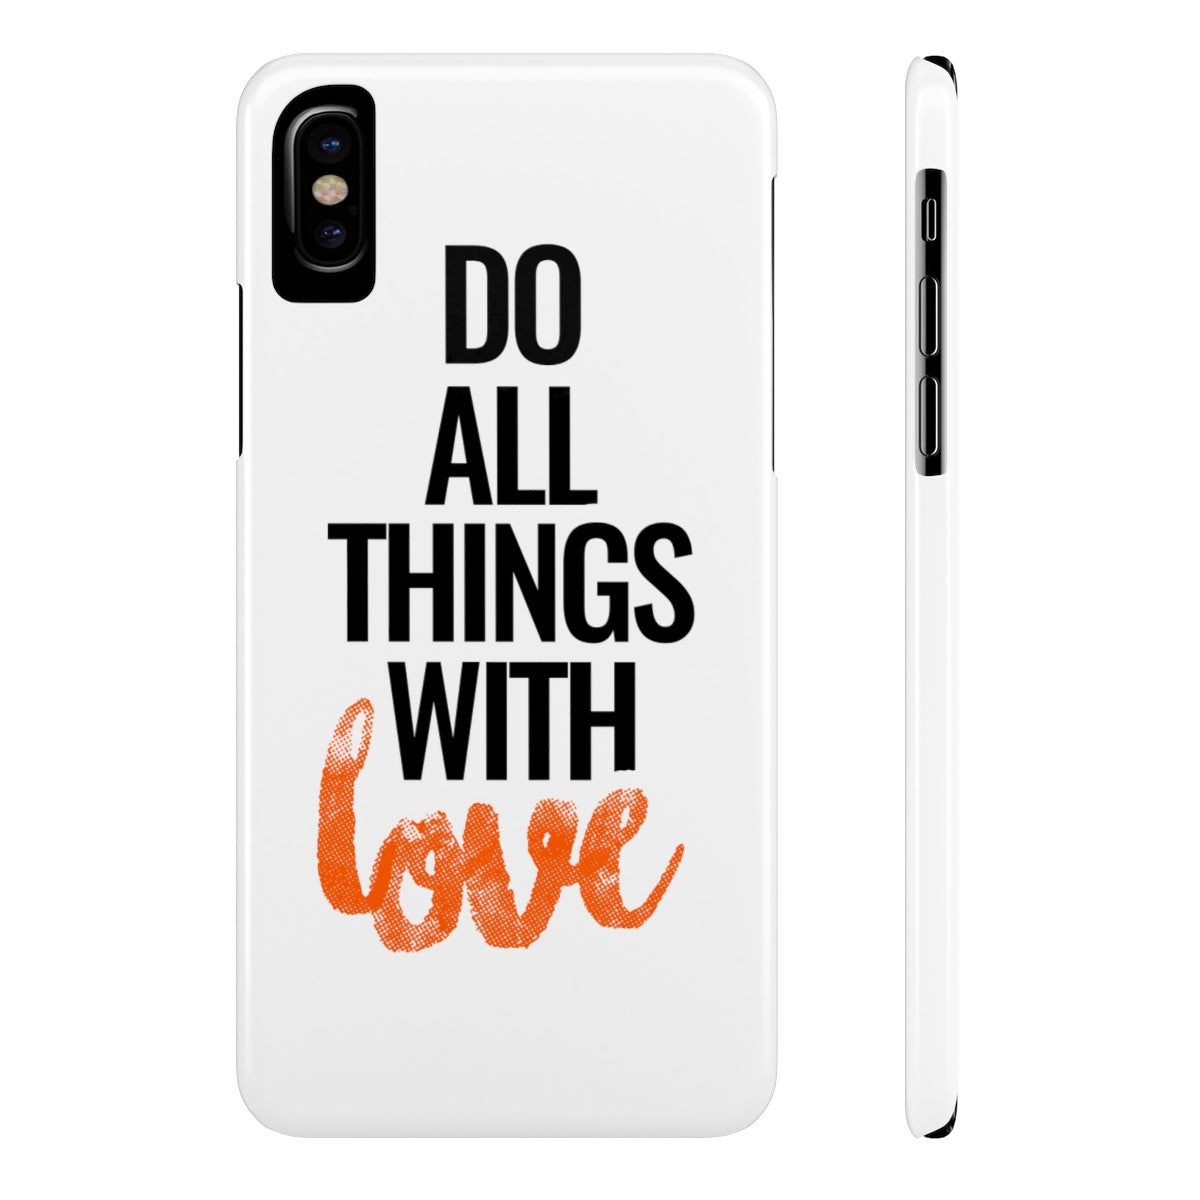 All Things With Love Case Phone Cases